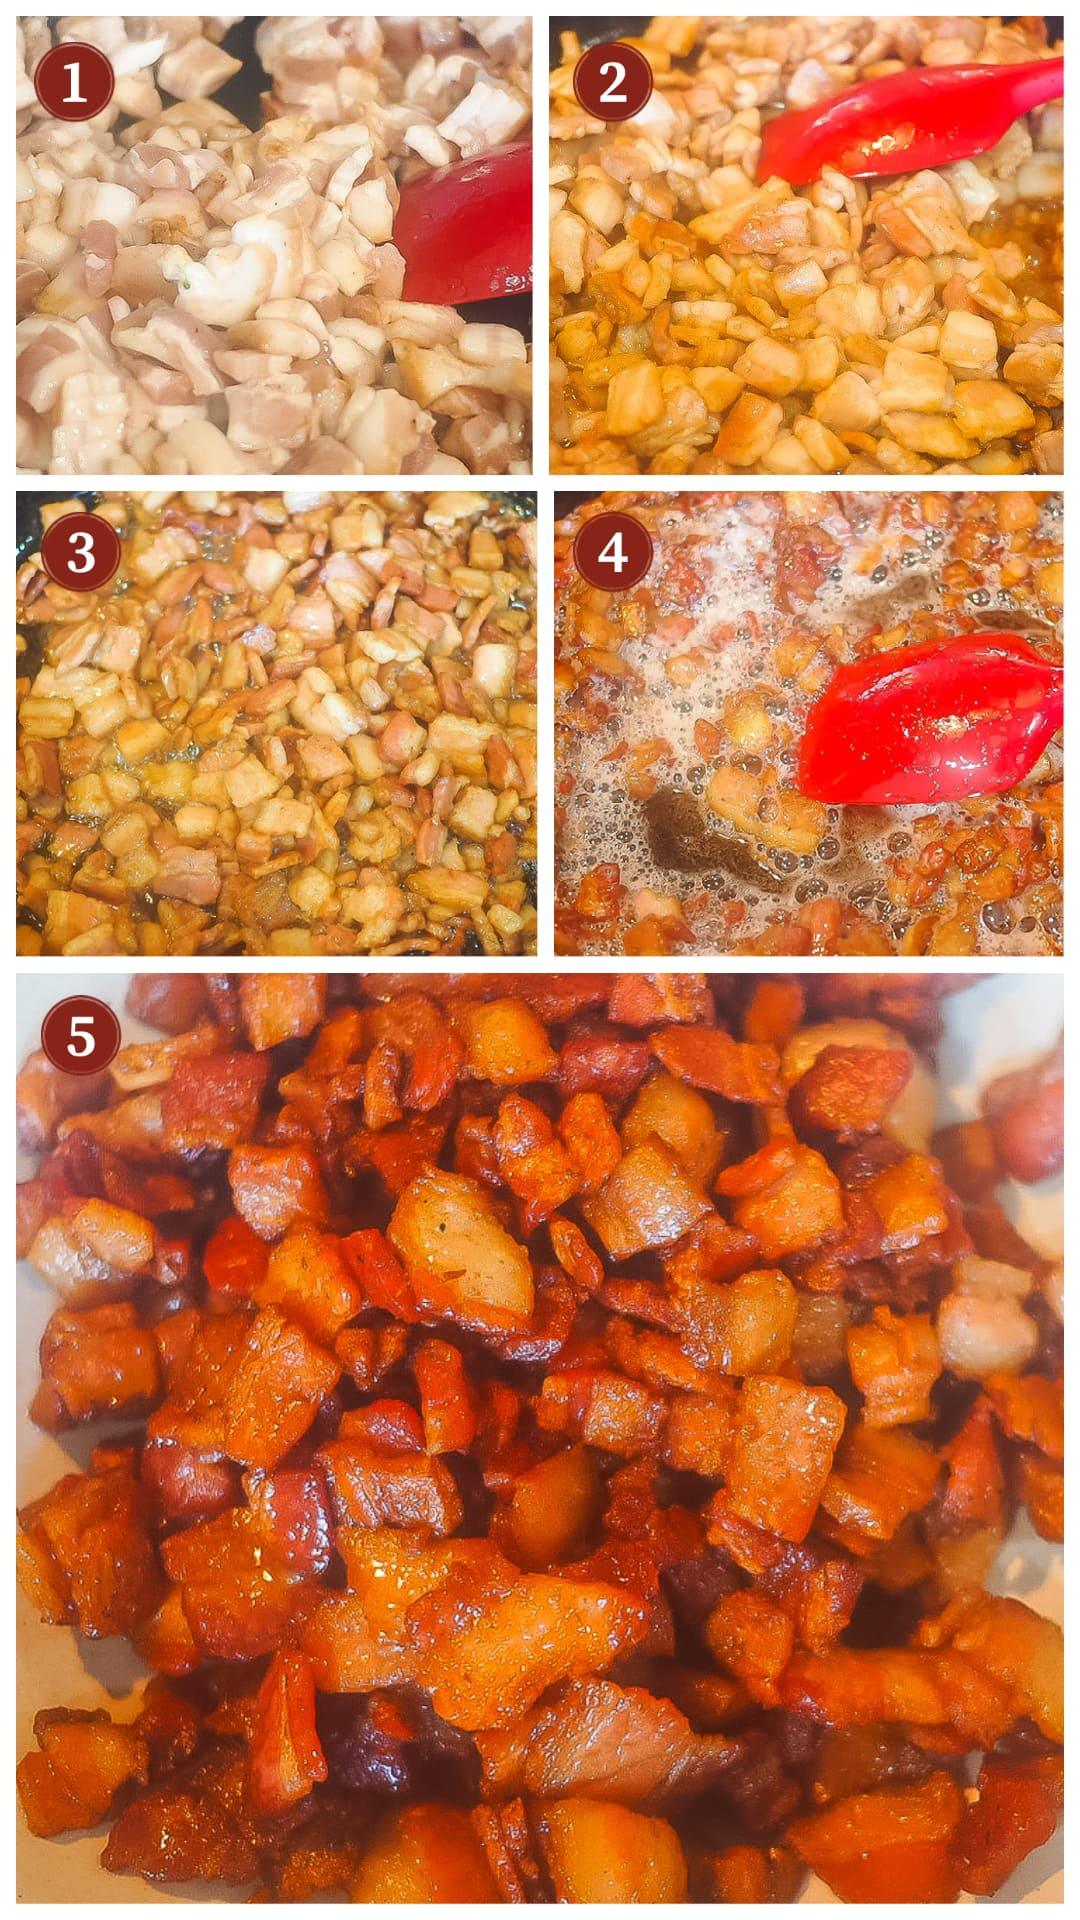 A collage of images showing how to make bacon onion jam steps 1 - 5.